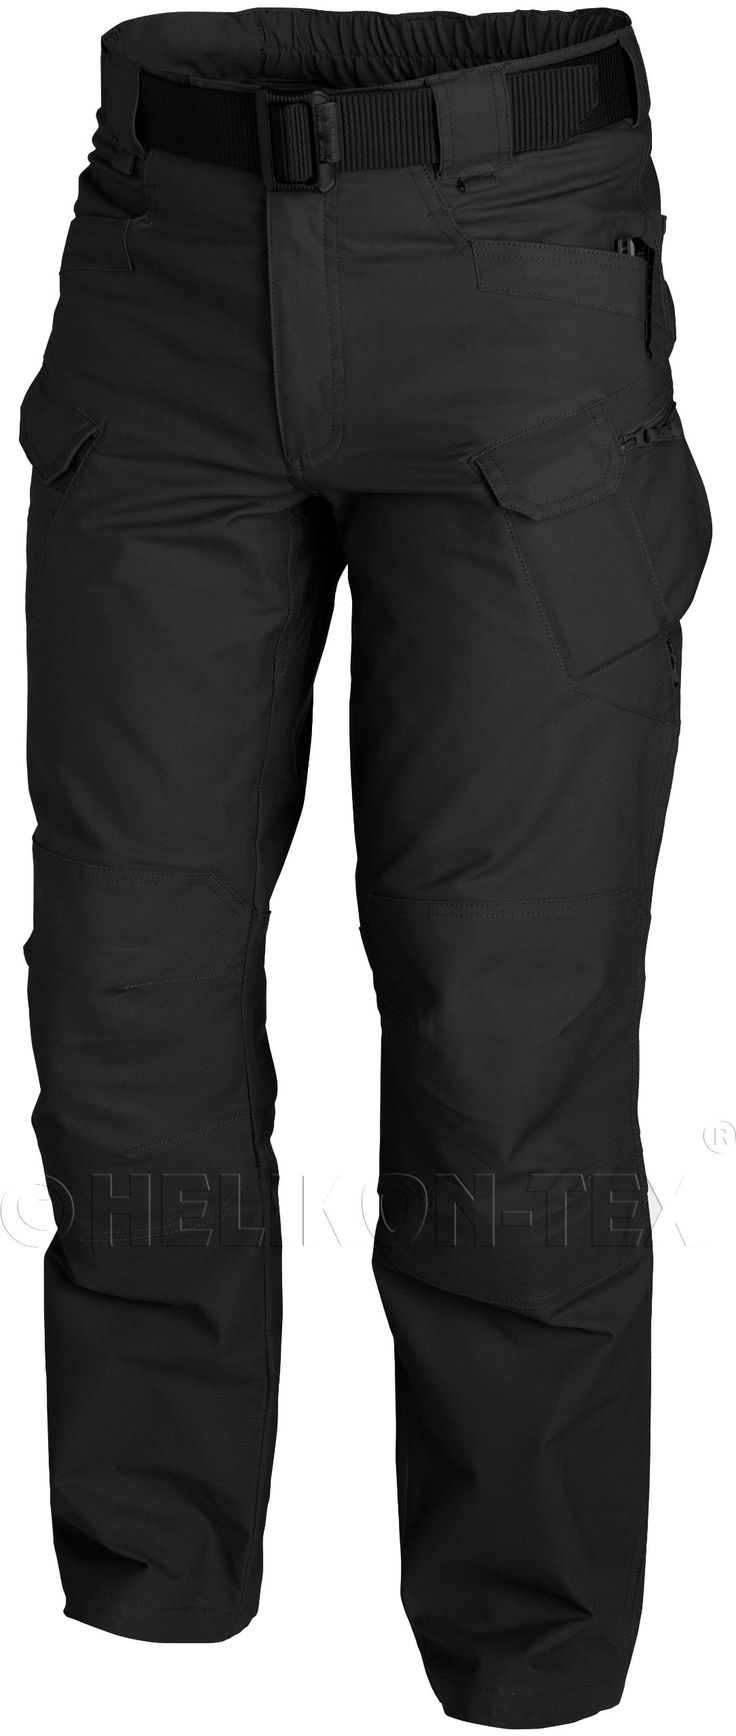 Helikon Tex UTP ® (Urban Tactical Pants) Hose - Canvas - Schwarz (S/xLong)